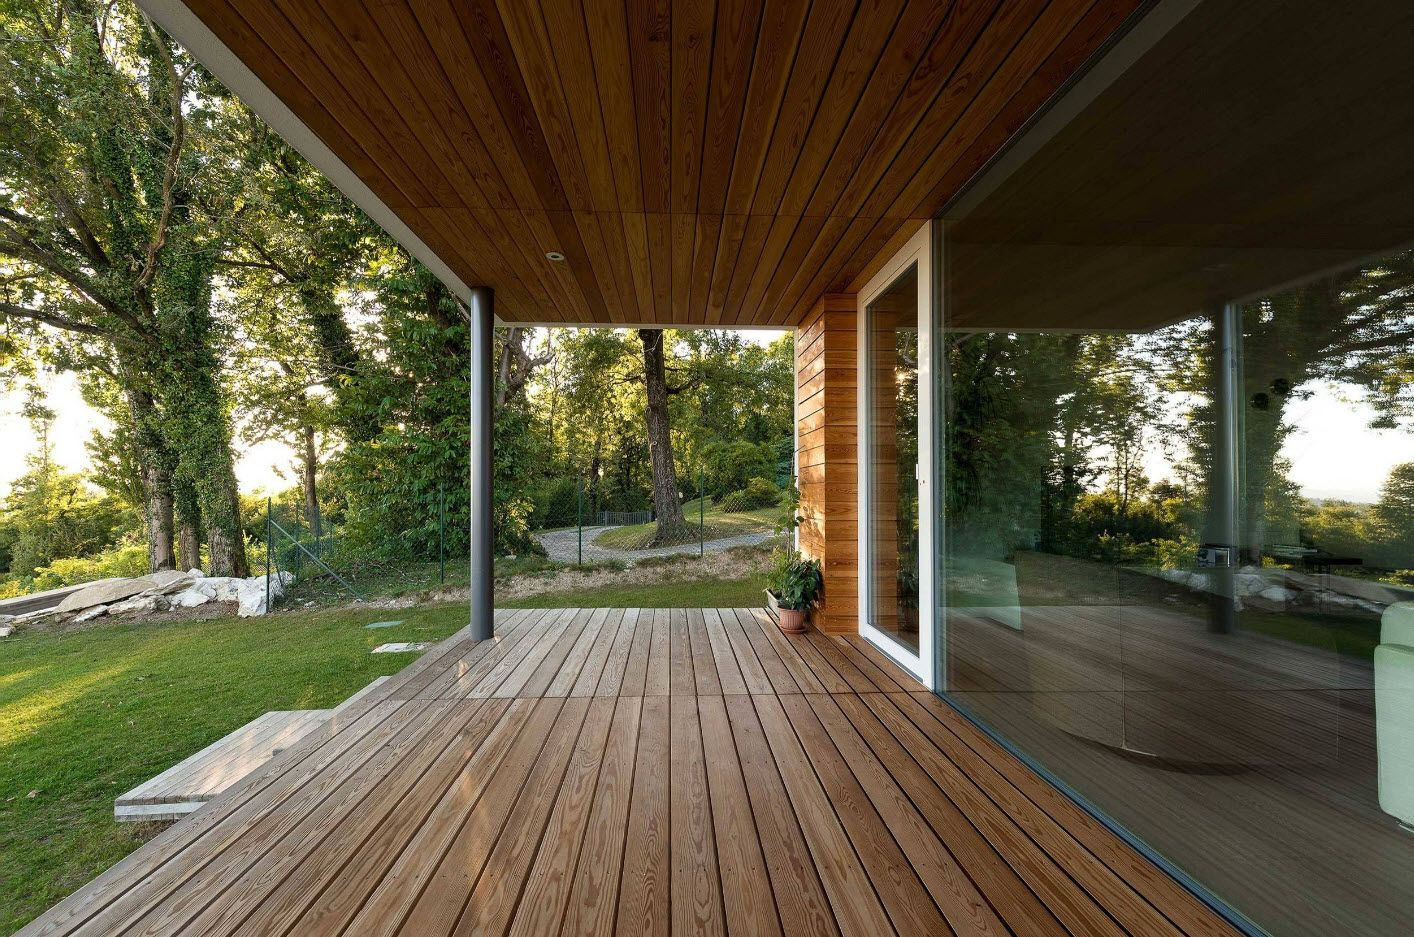 Country House Porch Decoration & Design Ideas. Broad modern space in minimalsitic style